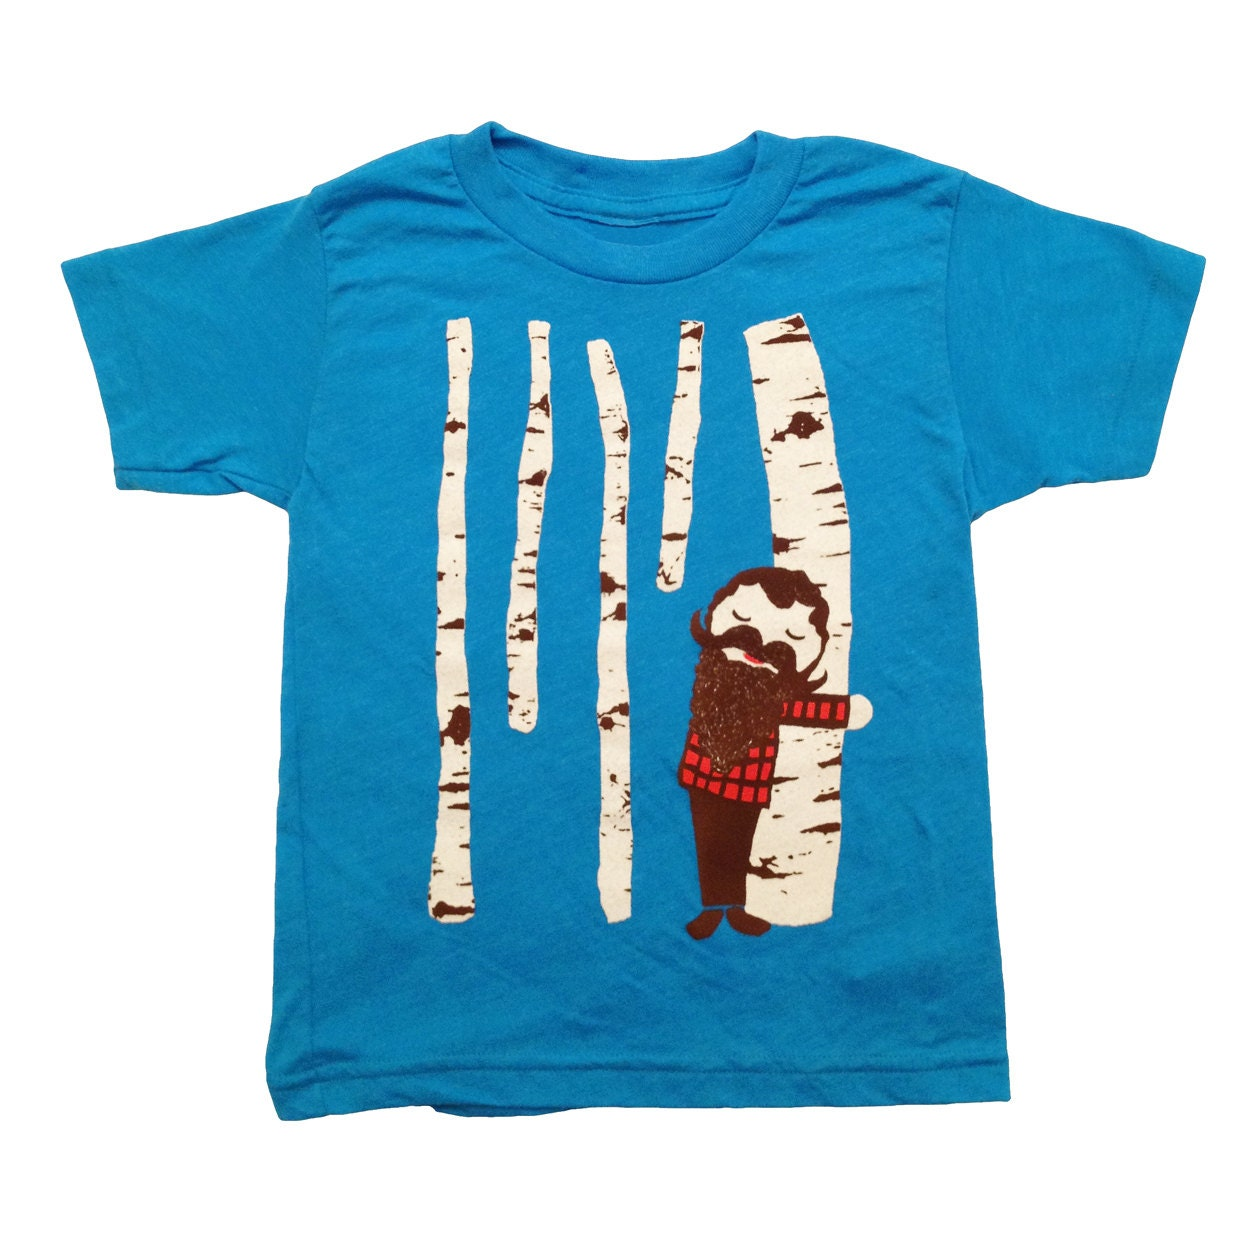 KIDS Tree Hugger T-shirt Boy Girl Children Toddler Youth Tee